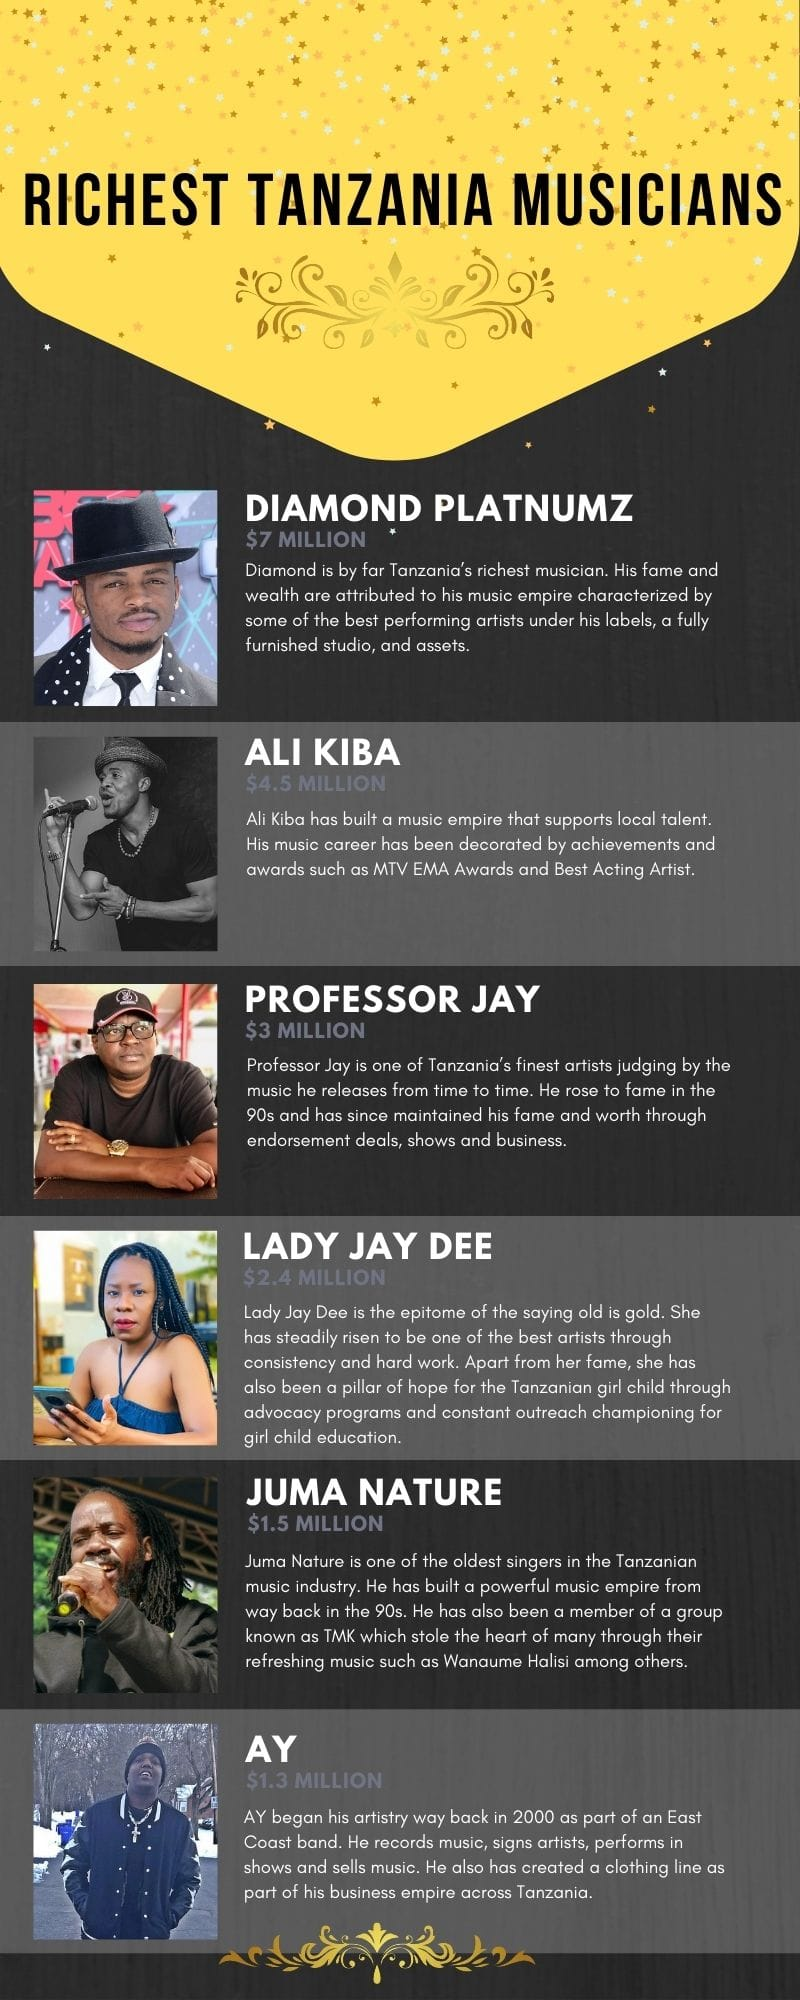 richest Tanzania musicians and their net worth in 2021